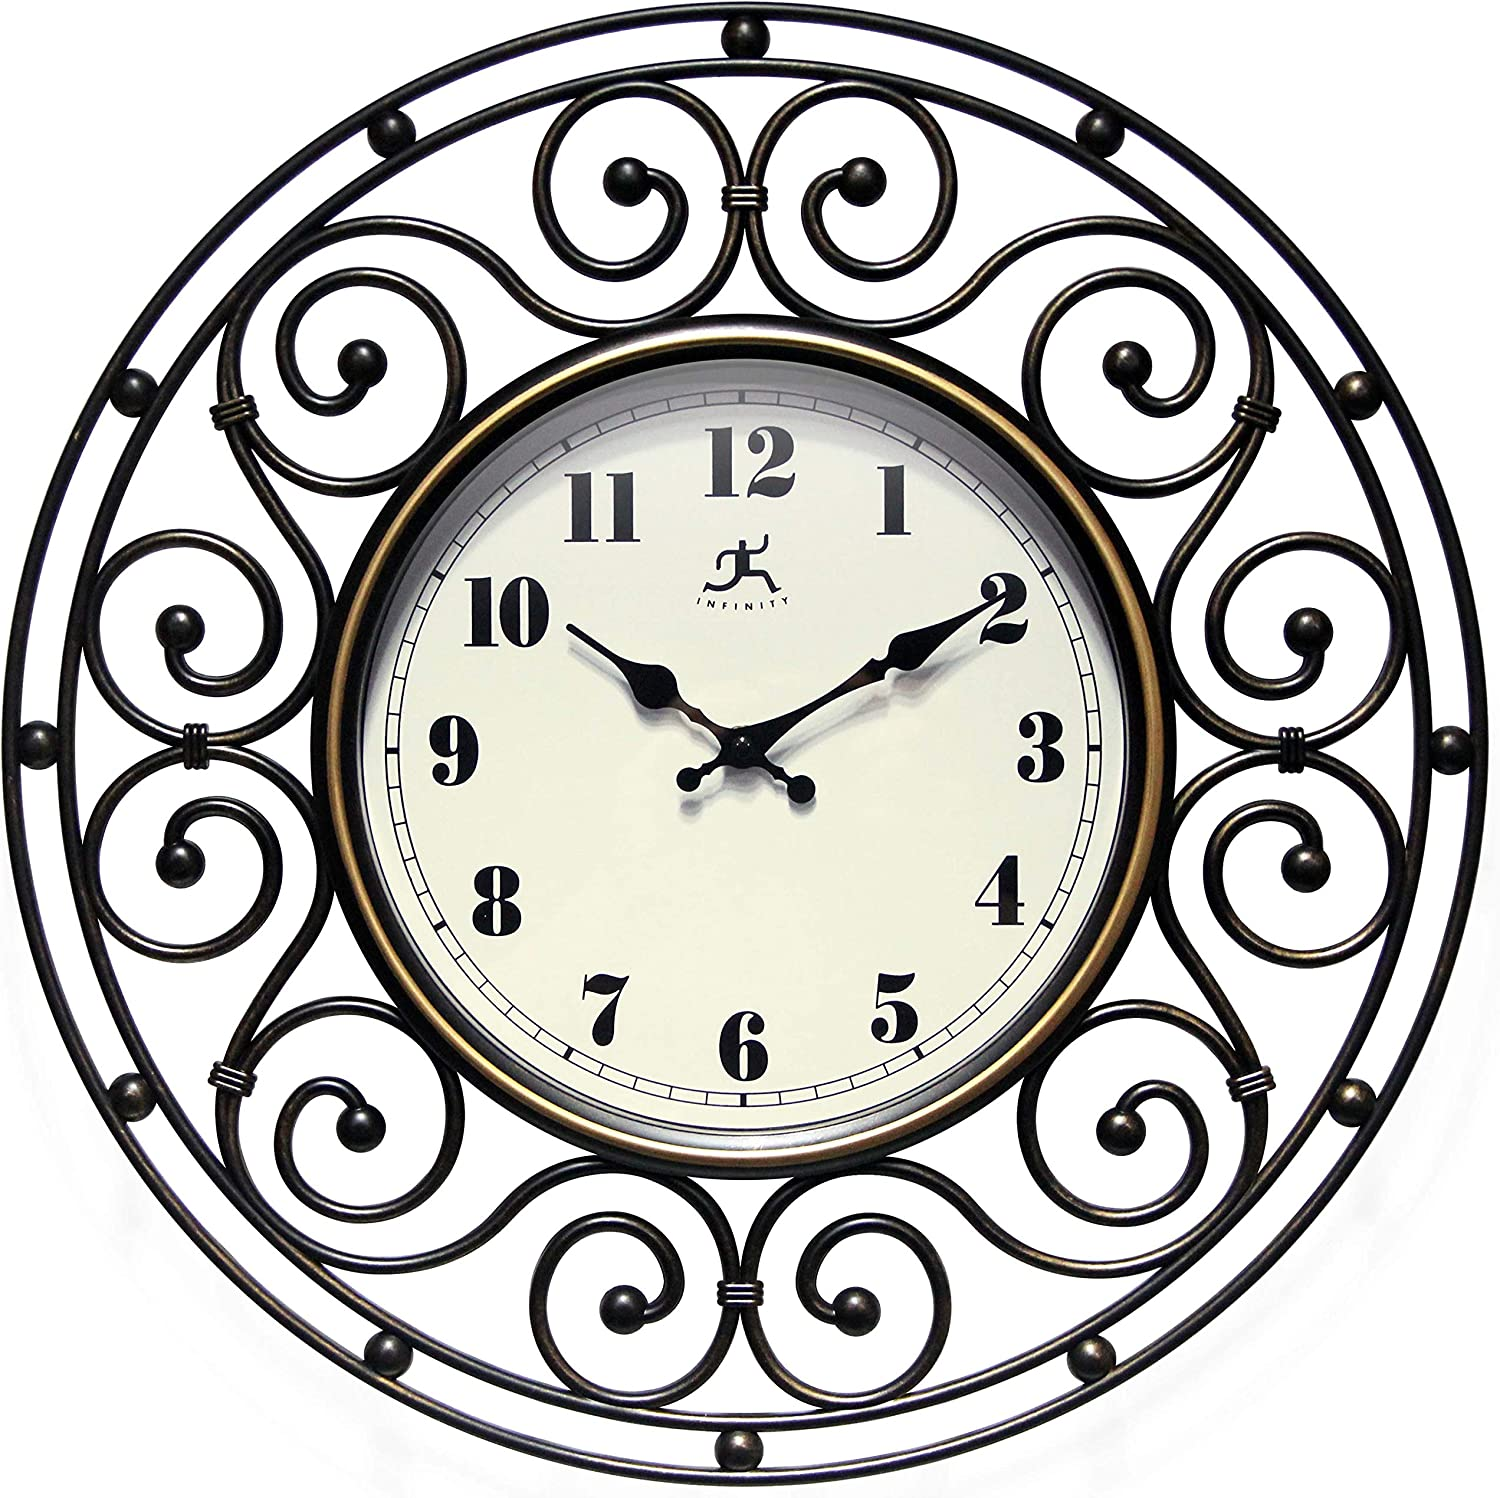 Provinciale 18 inch Decorative Wrought Iron Bronze Wall Clock for Living Room, Bathroom, Bedroom Home Decor Battery Operated